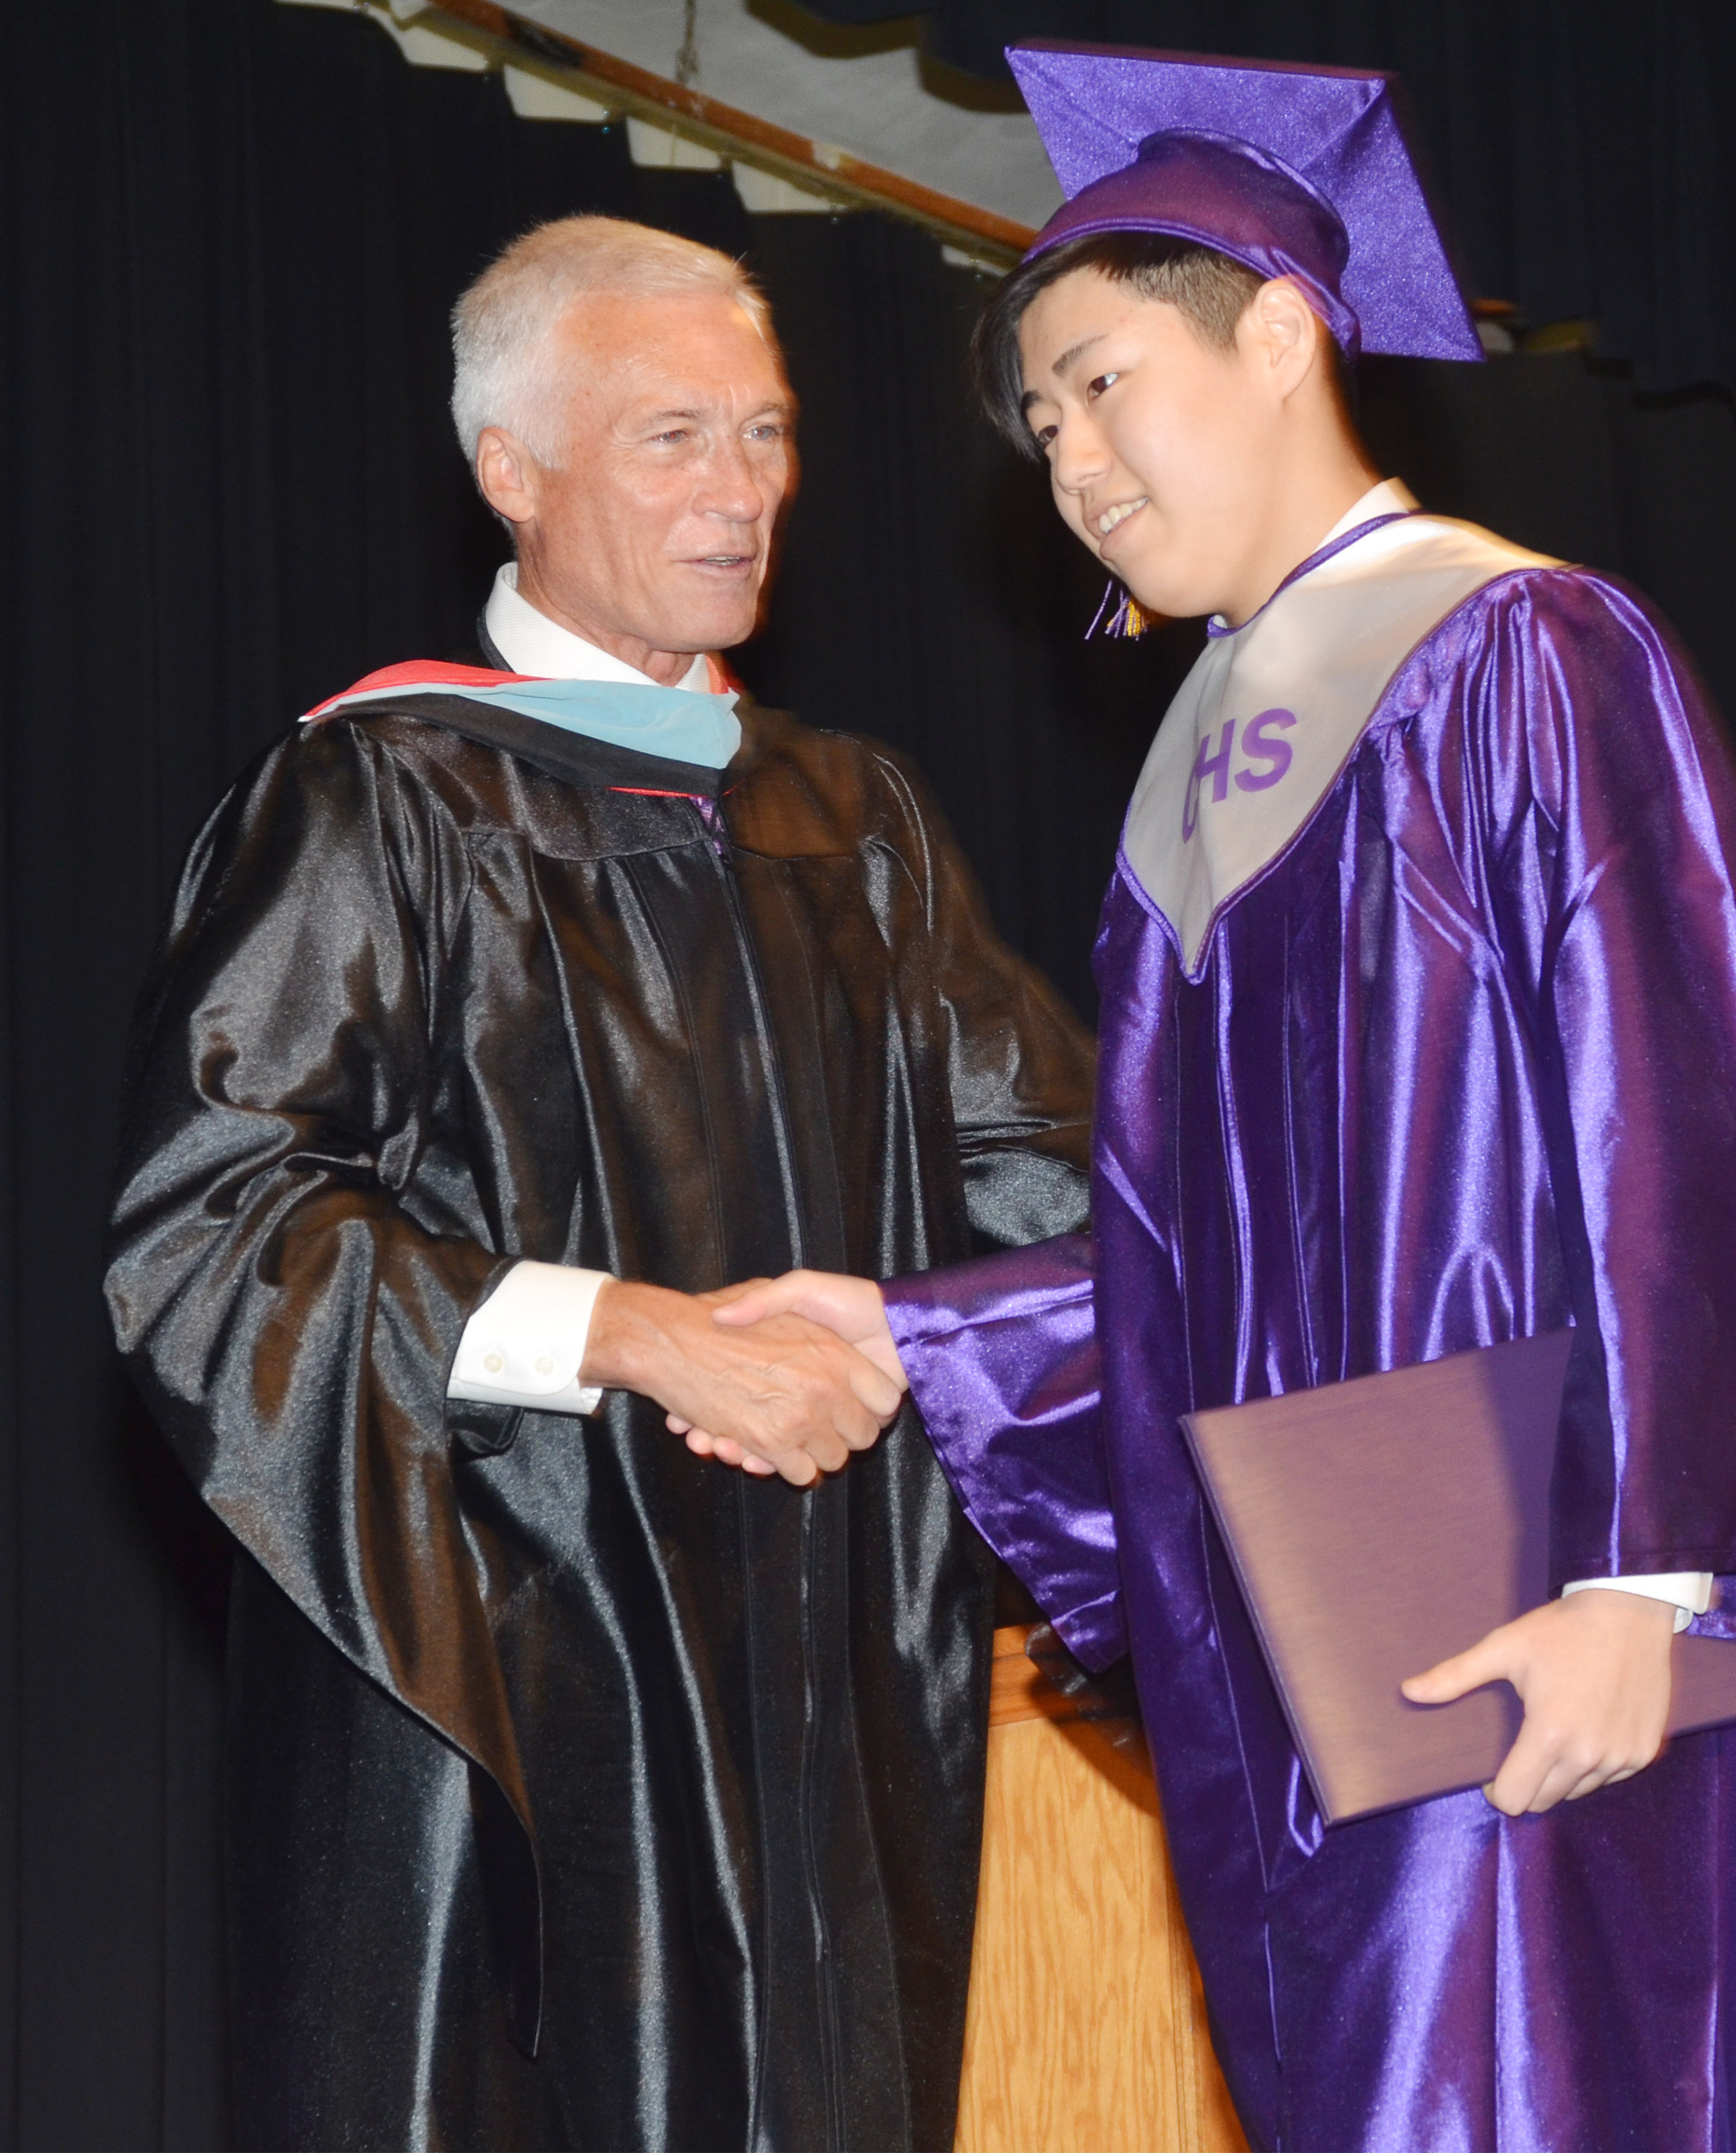 Campbellsville Independent Schools Superintendent Mike Deaton congratulates Iori Hashimoto.